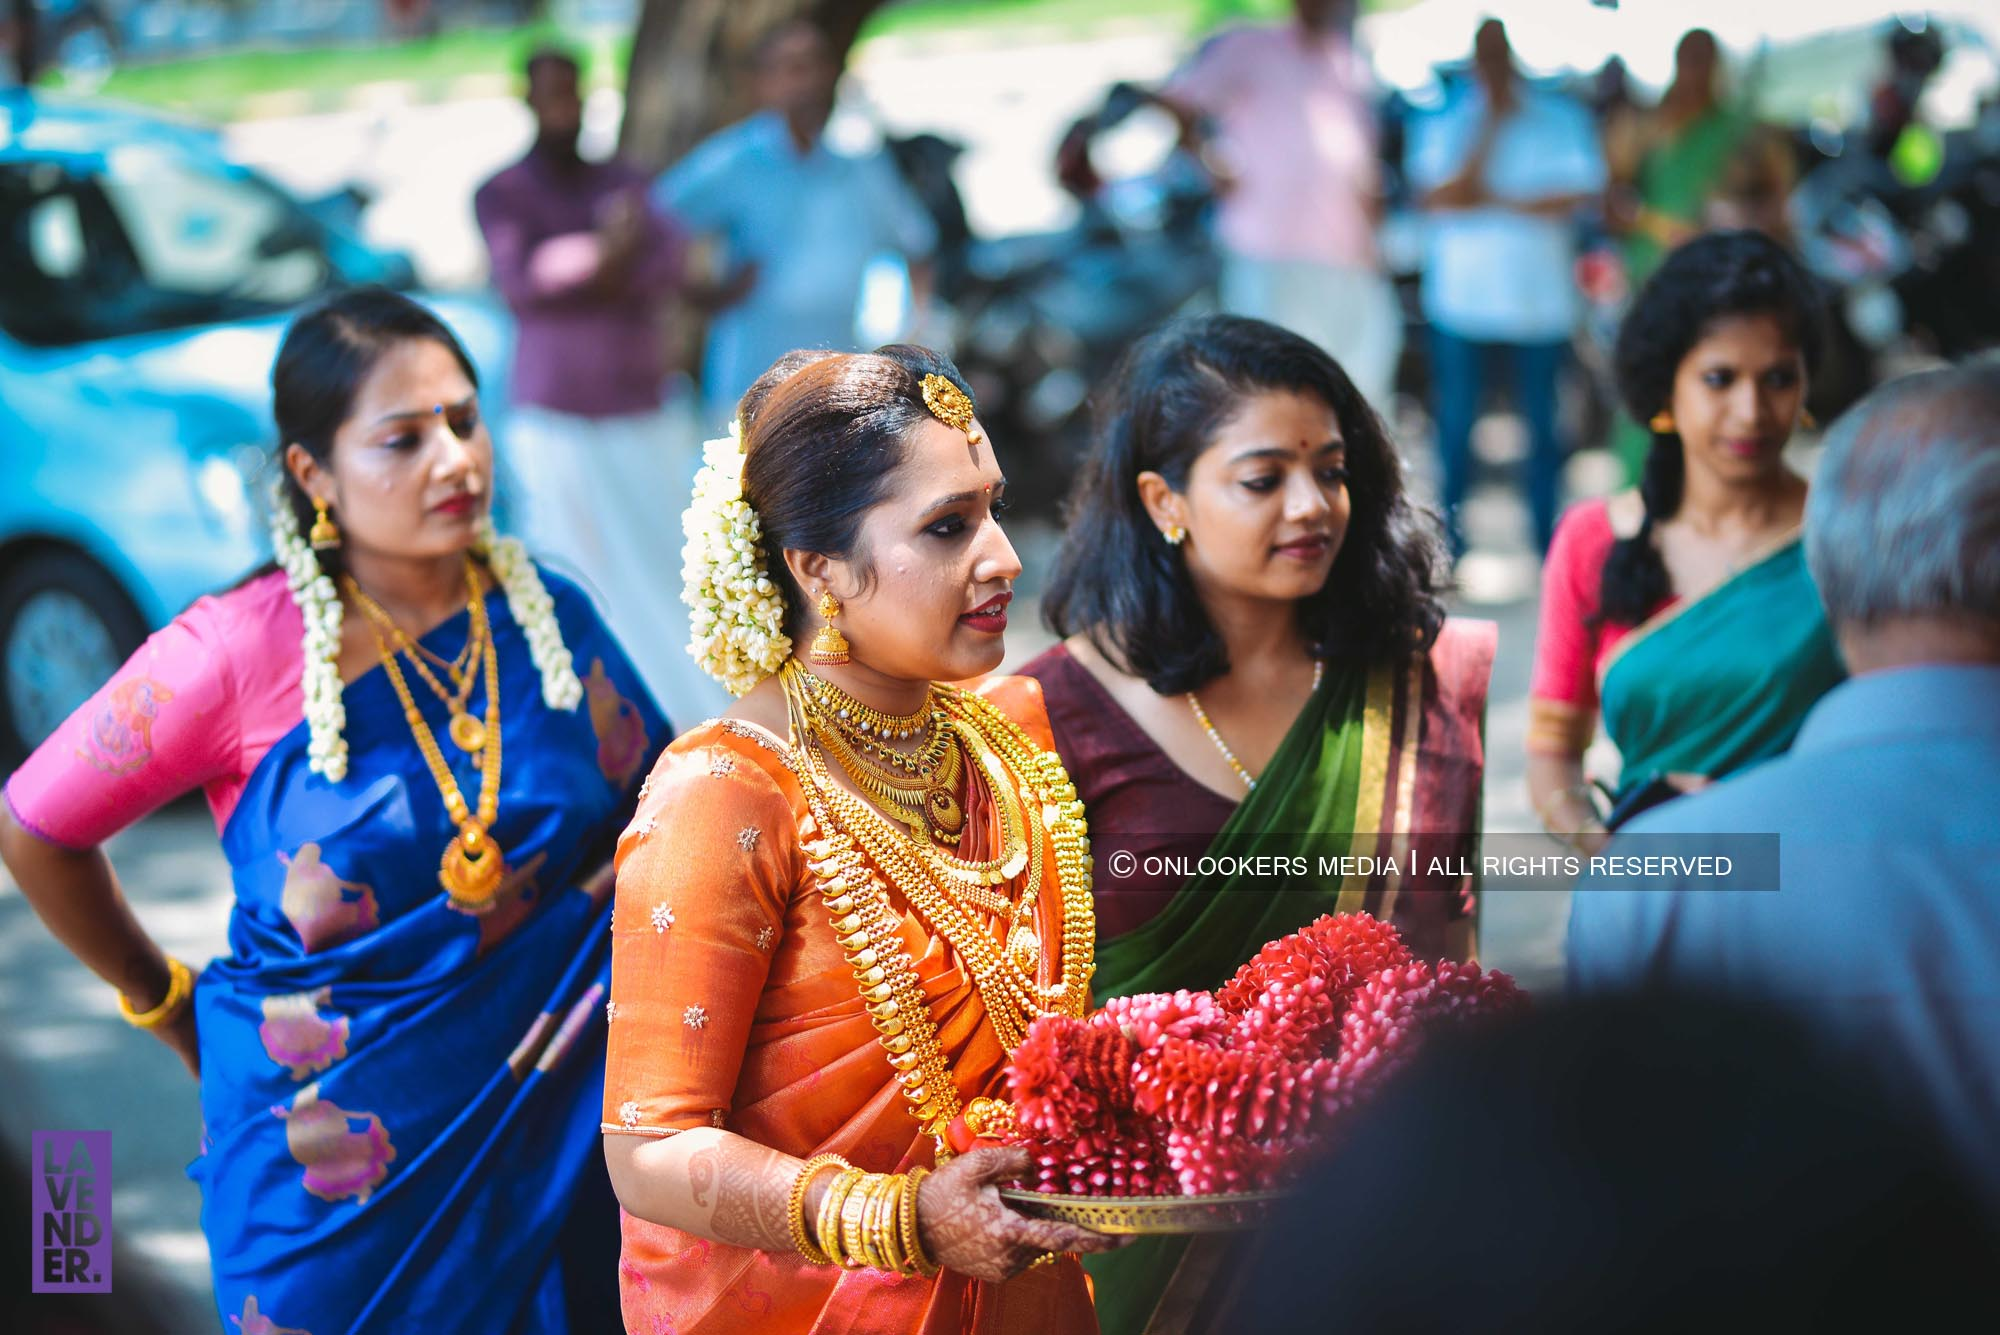 http://onlookersmedia.in/wp-content/uploads/2018/05/sreejith-vijay-wedding-stills-images-27.jpg